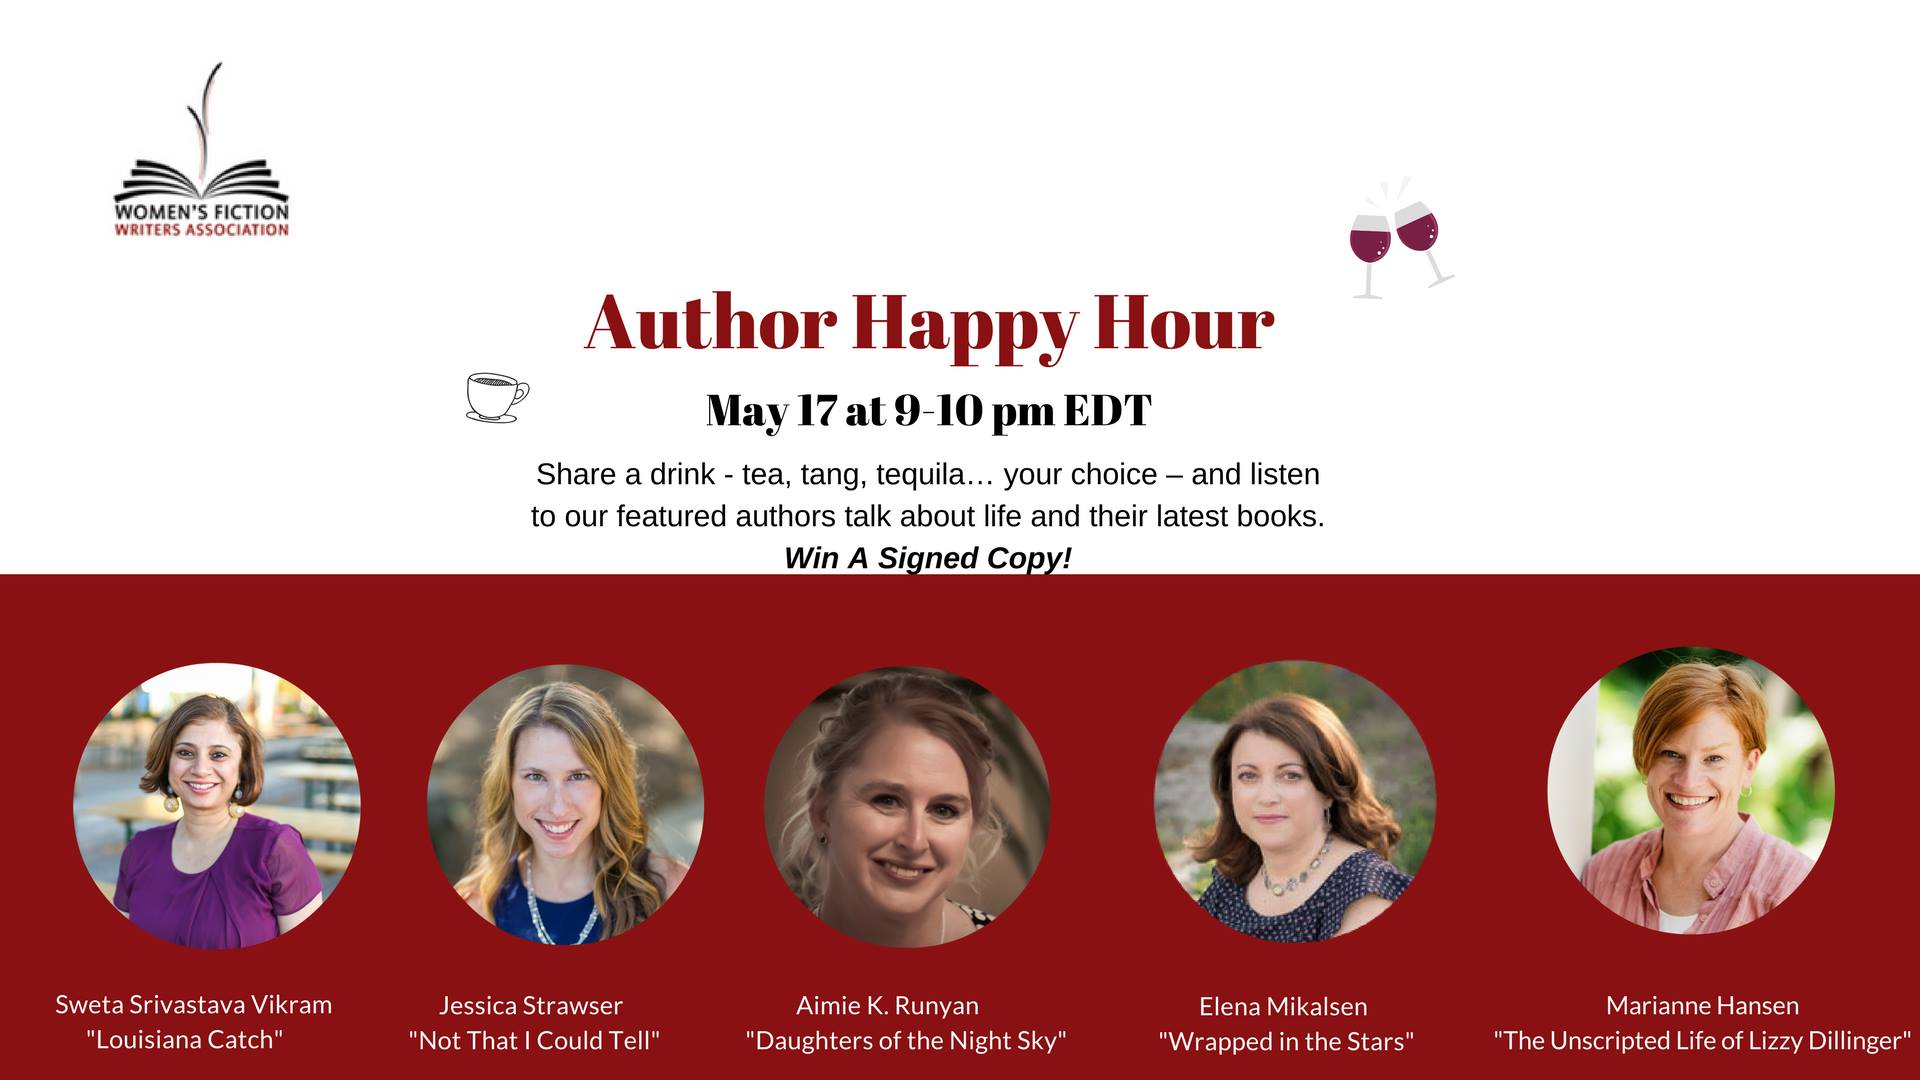 AUTHOR HAPPY HOUR